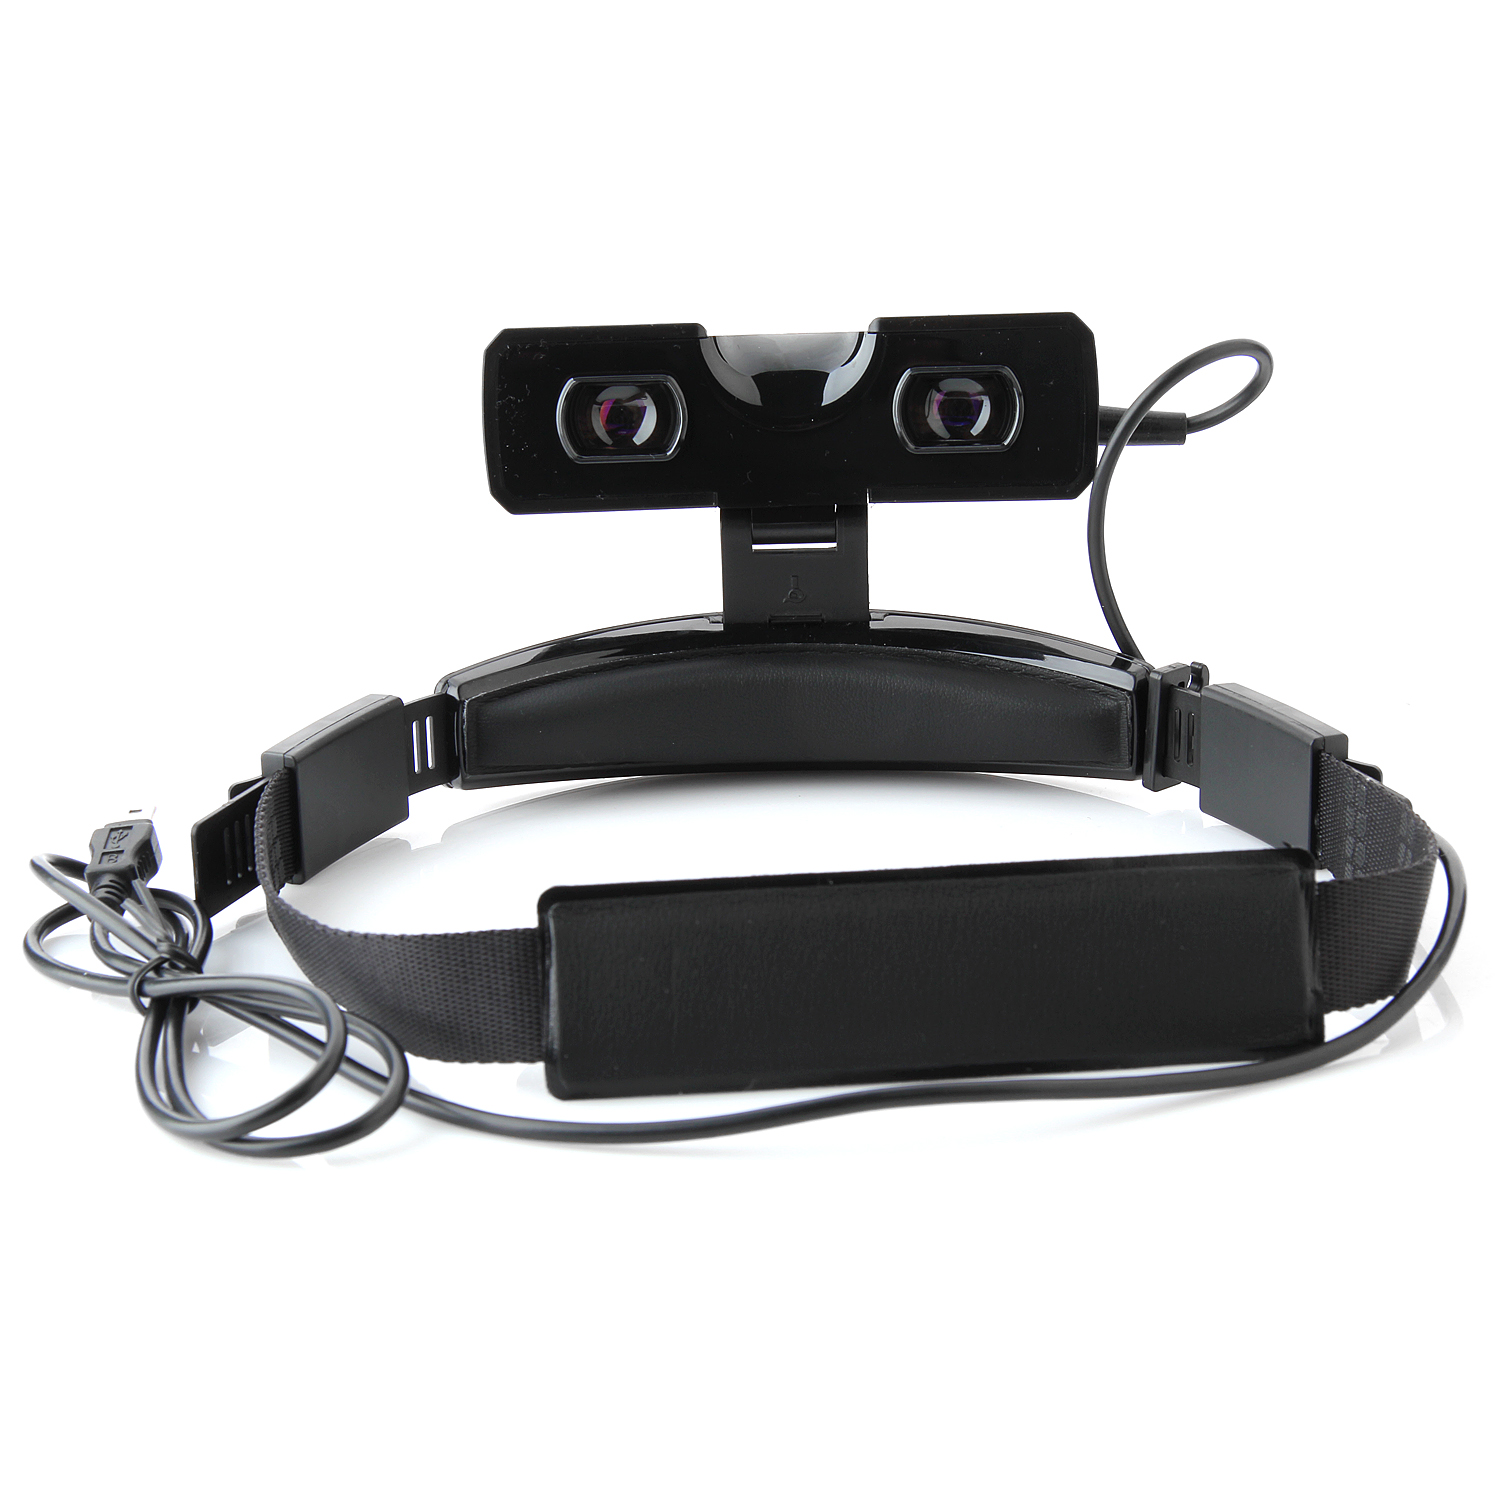 "27"" Virtual Screen Personal 2D/3D Viewer Headband Video Glasses Cinema 16:9 with AV-In"